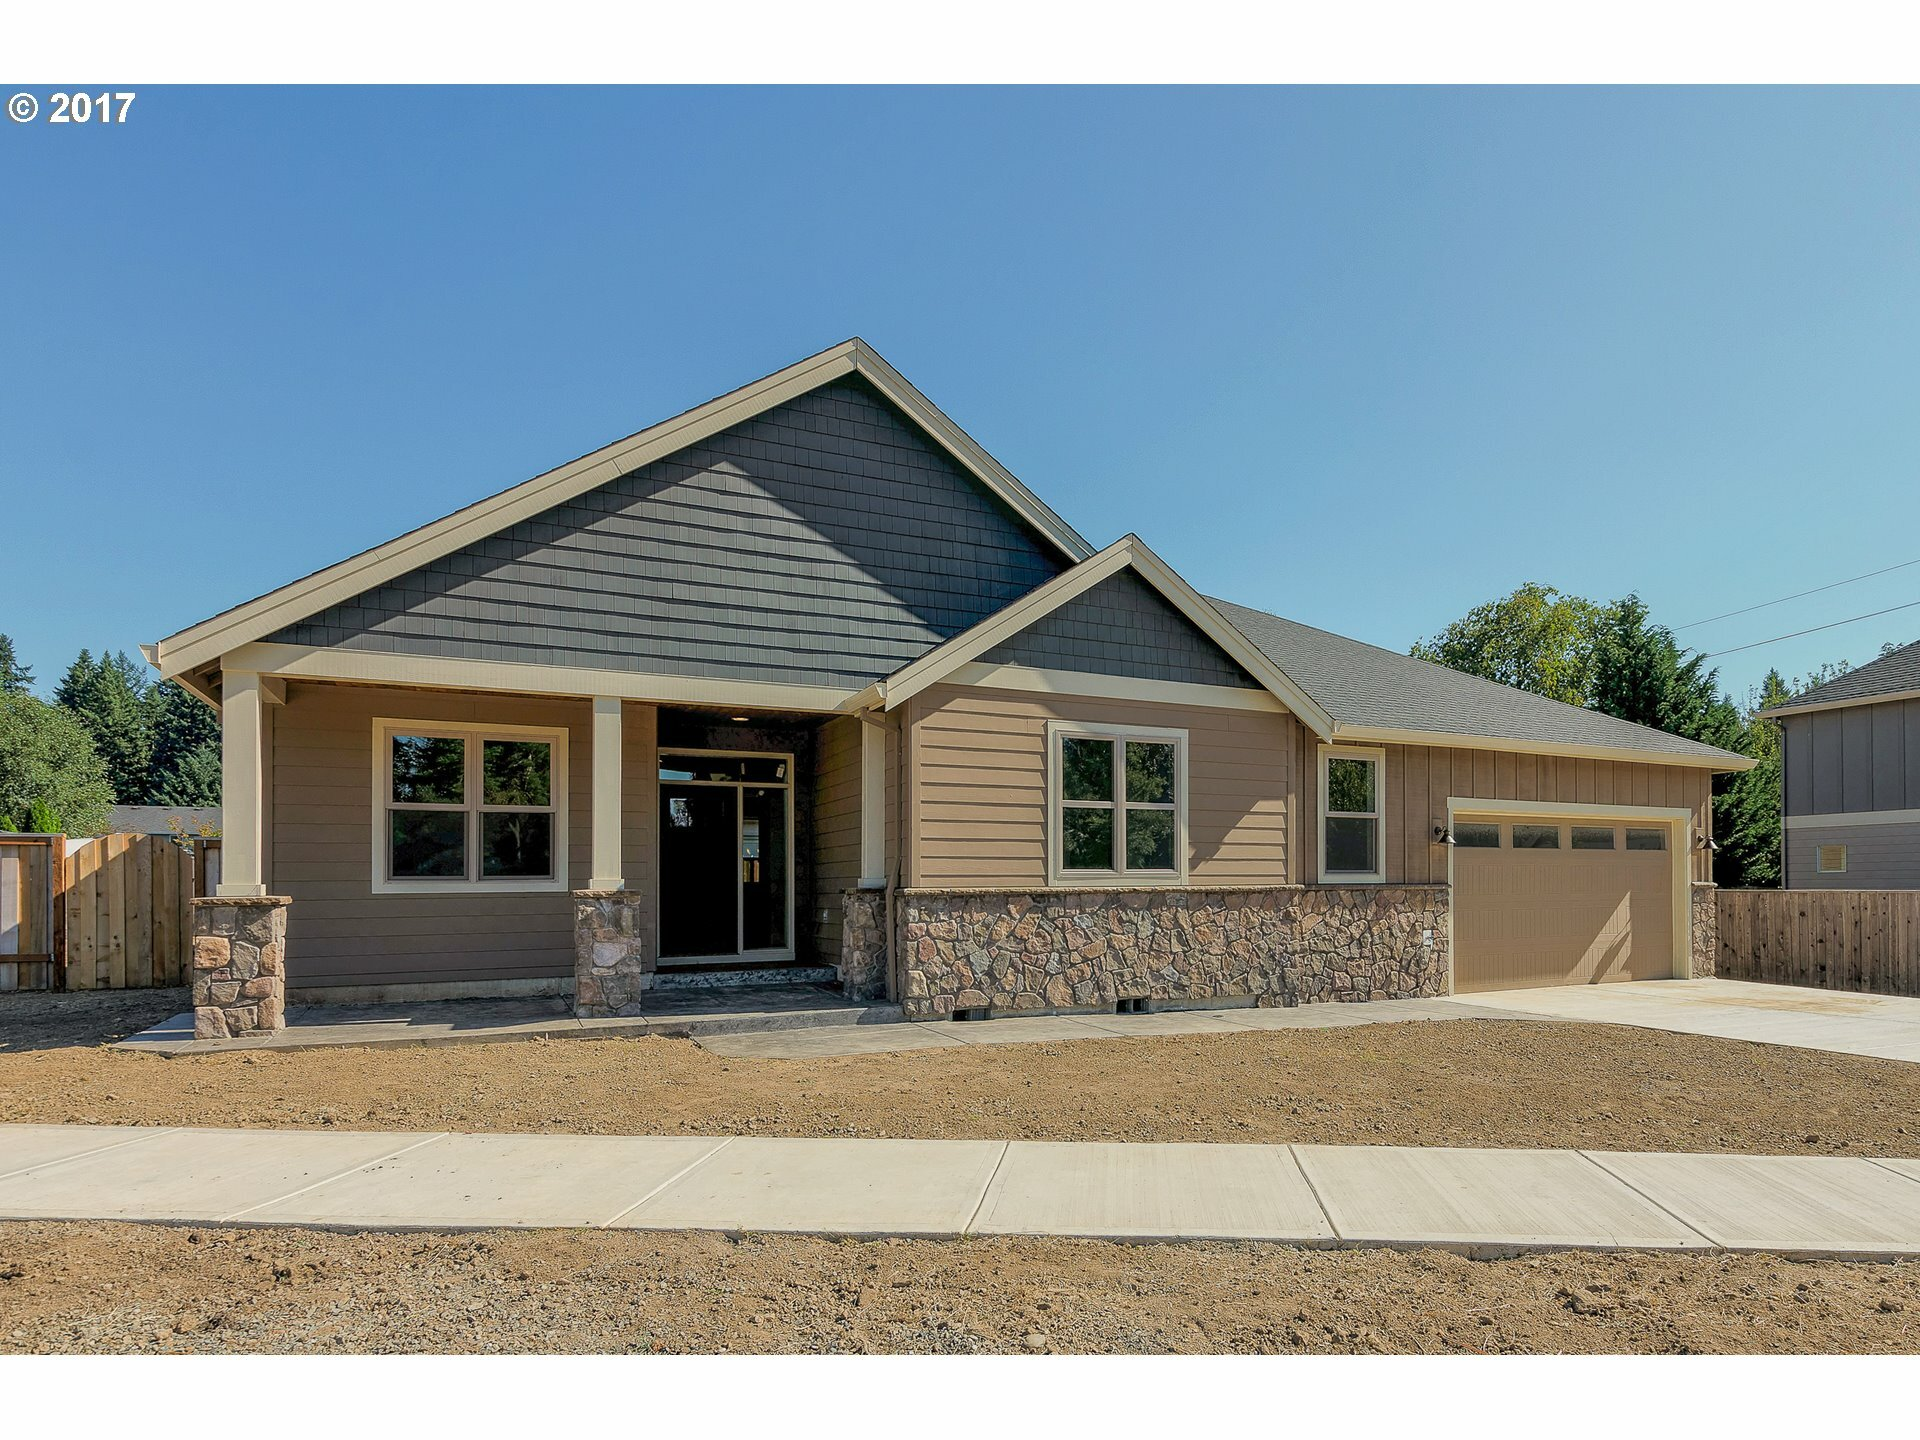 1430 Ne 17th Ave, Canby, OR - USA (photo 1)